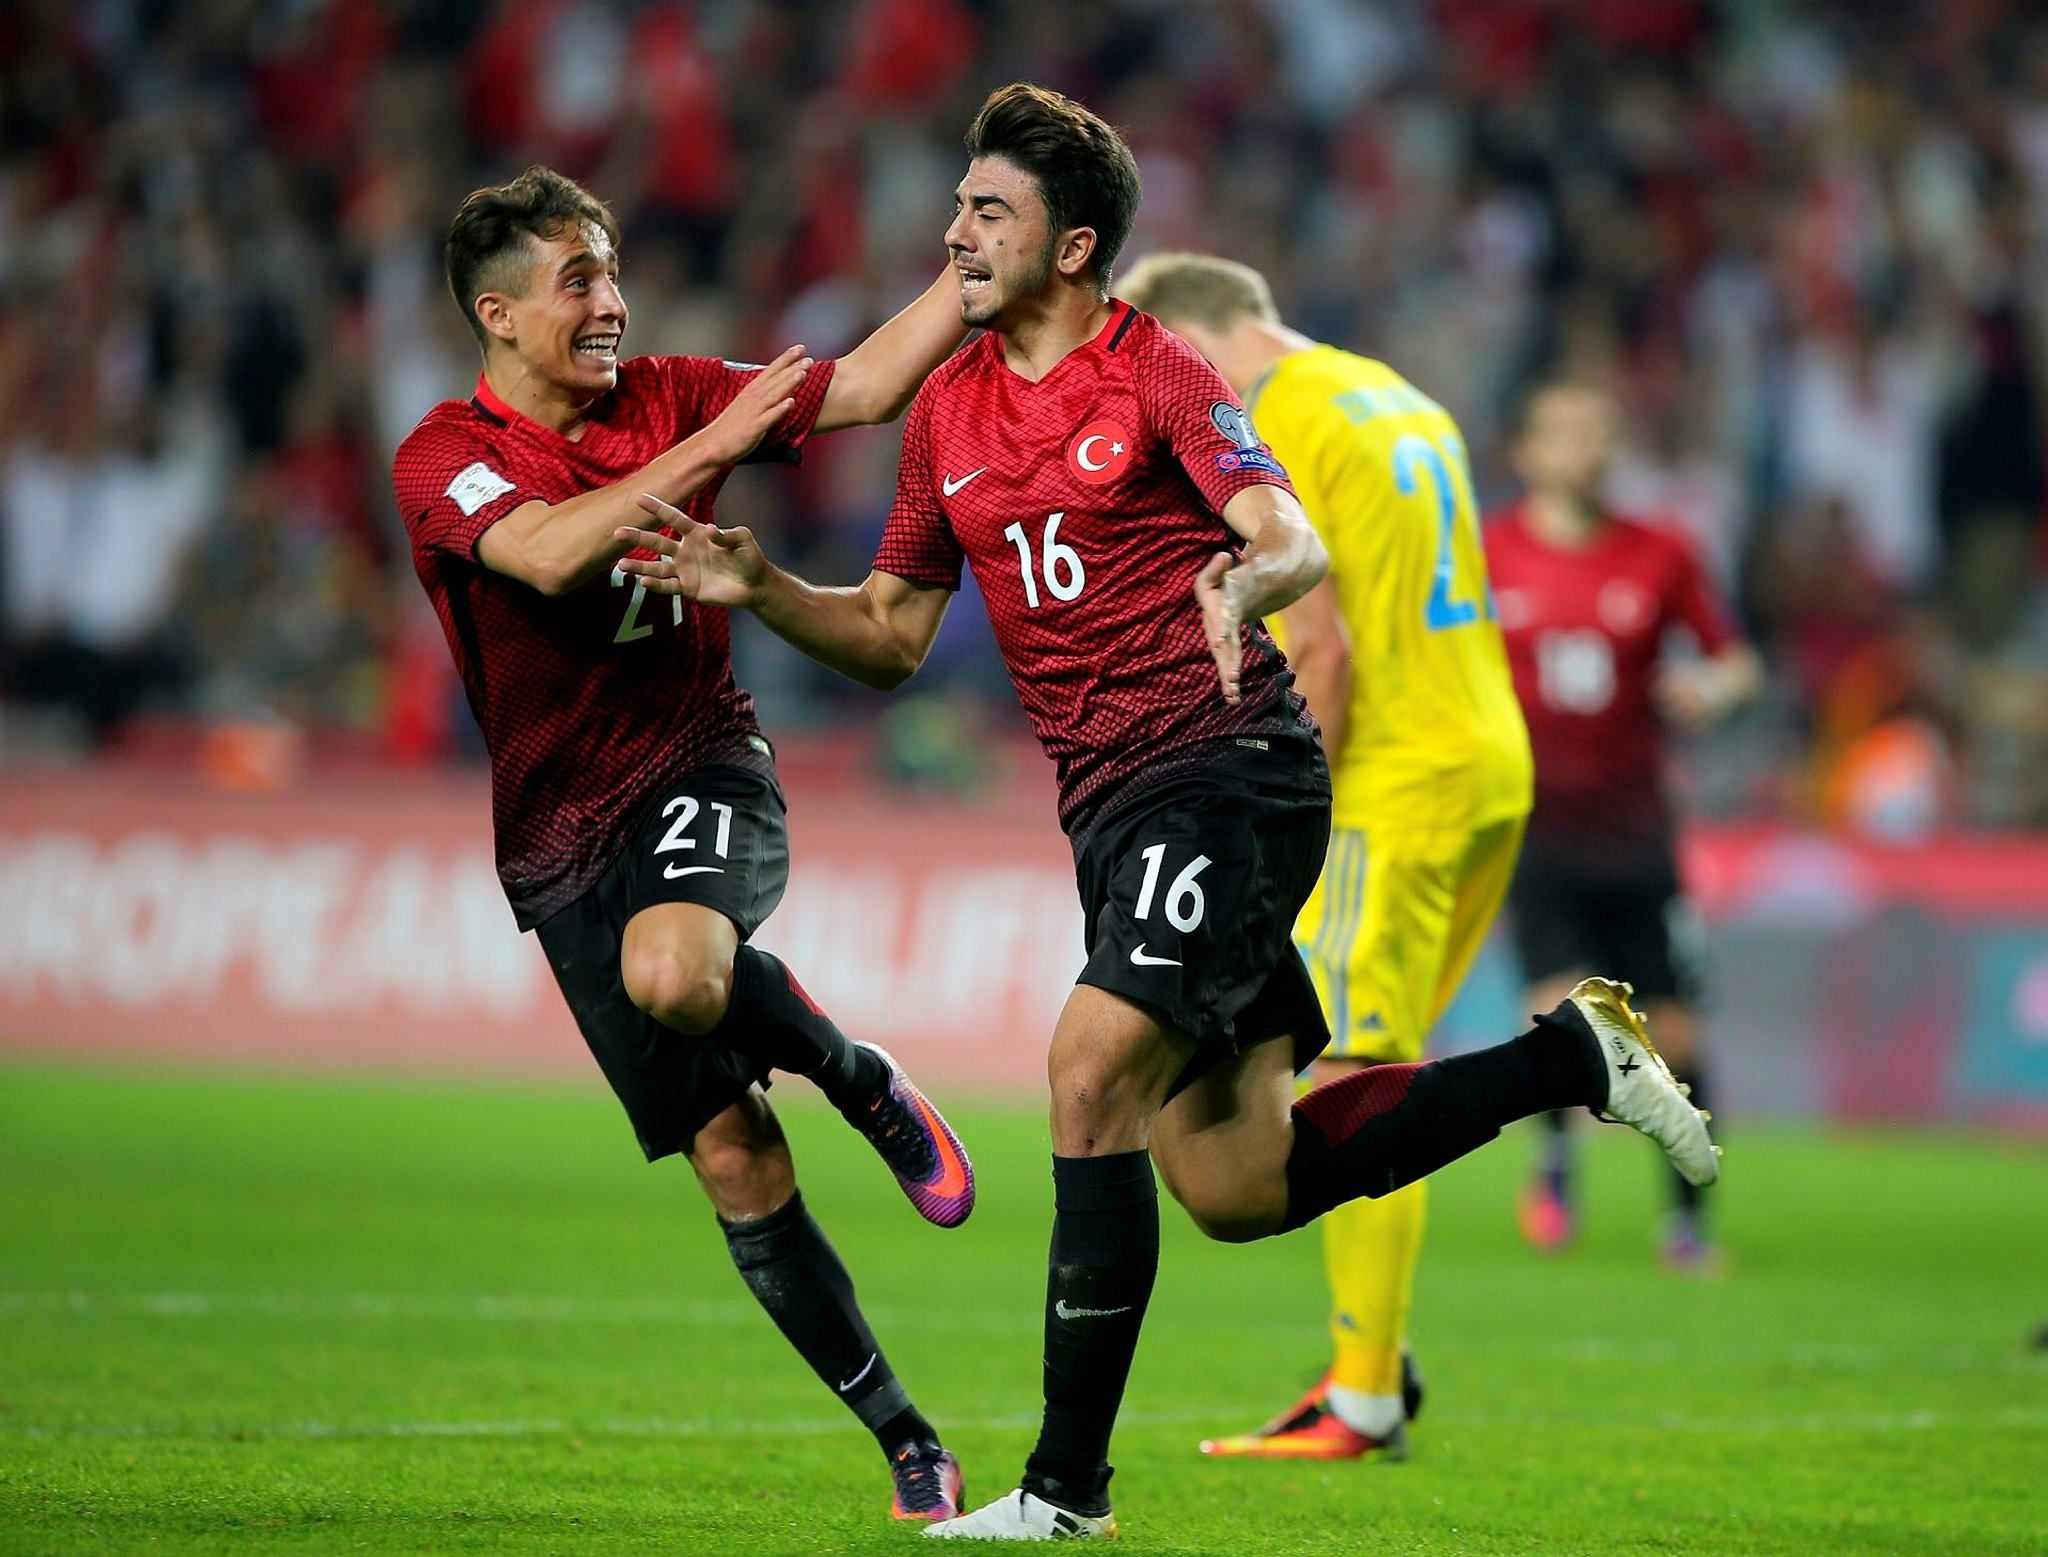 Turkey's Ozan Tufan, right, celebrates after scoring, as his teammate Emre Mor runs to join him, during the World Cup Group I qualifying match between Turkey and Ukraine. (AP Photo)